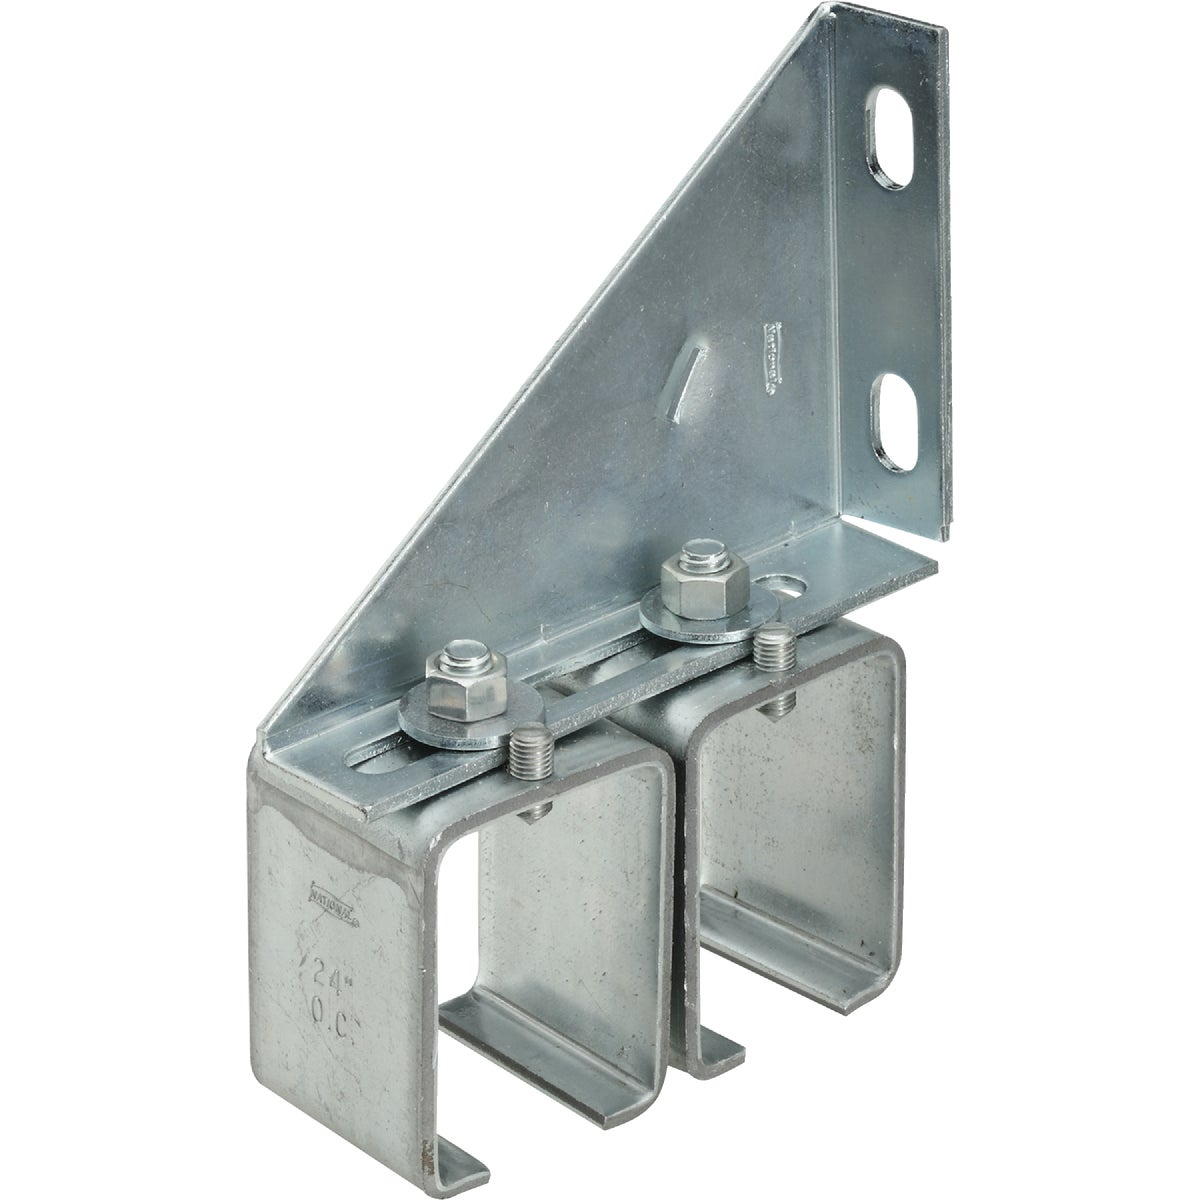 DOUBLE SPLICE BRACKET